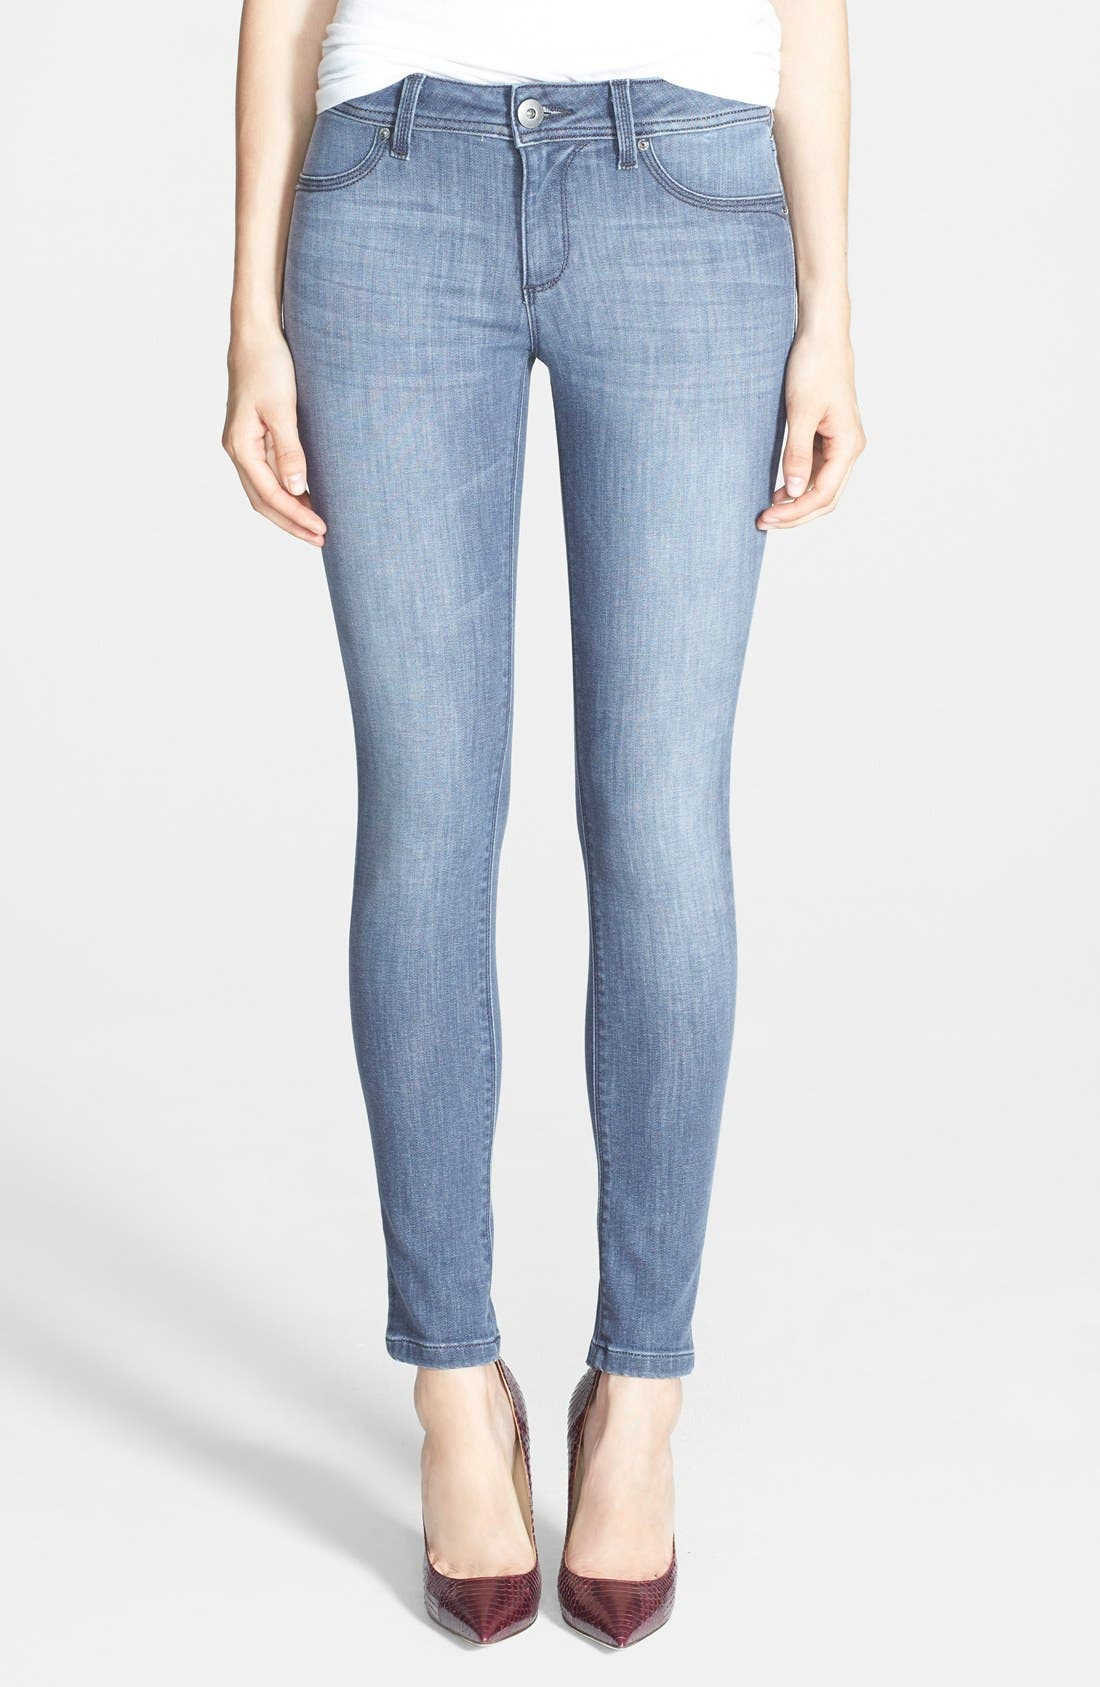 Alternate Image 1 Selected - DL1961 'Emma' Power Legging Jeans (Pierce)